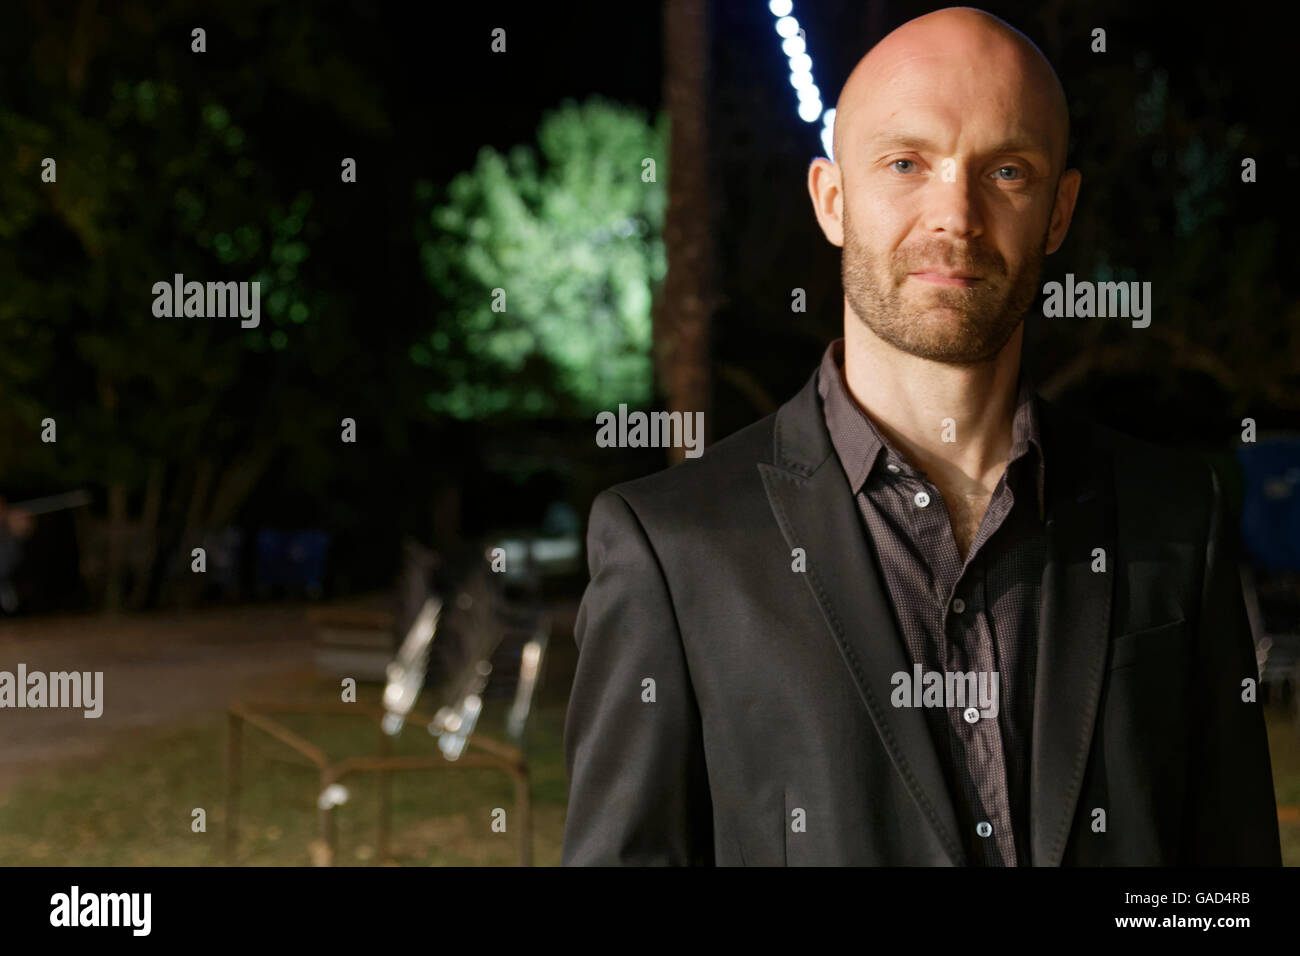 Agde, France July, 2, 2016.Michel Gagliolo of The Messengers Sextet of Piero Iannetti .Credit : Veronique Phitoussi/Alamy - Stock Image